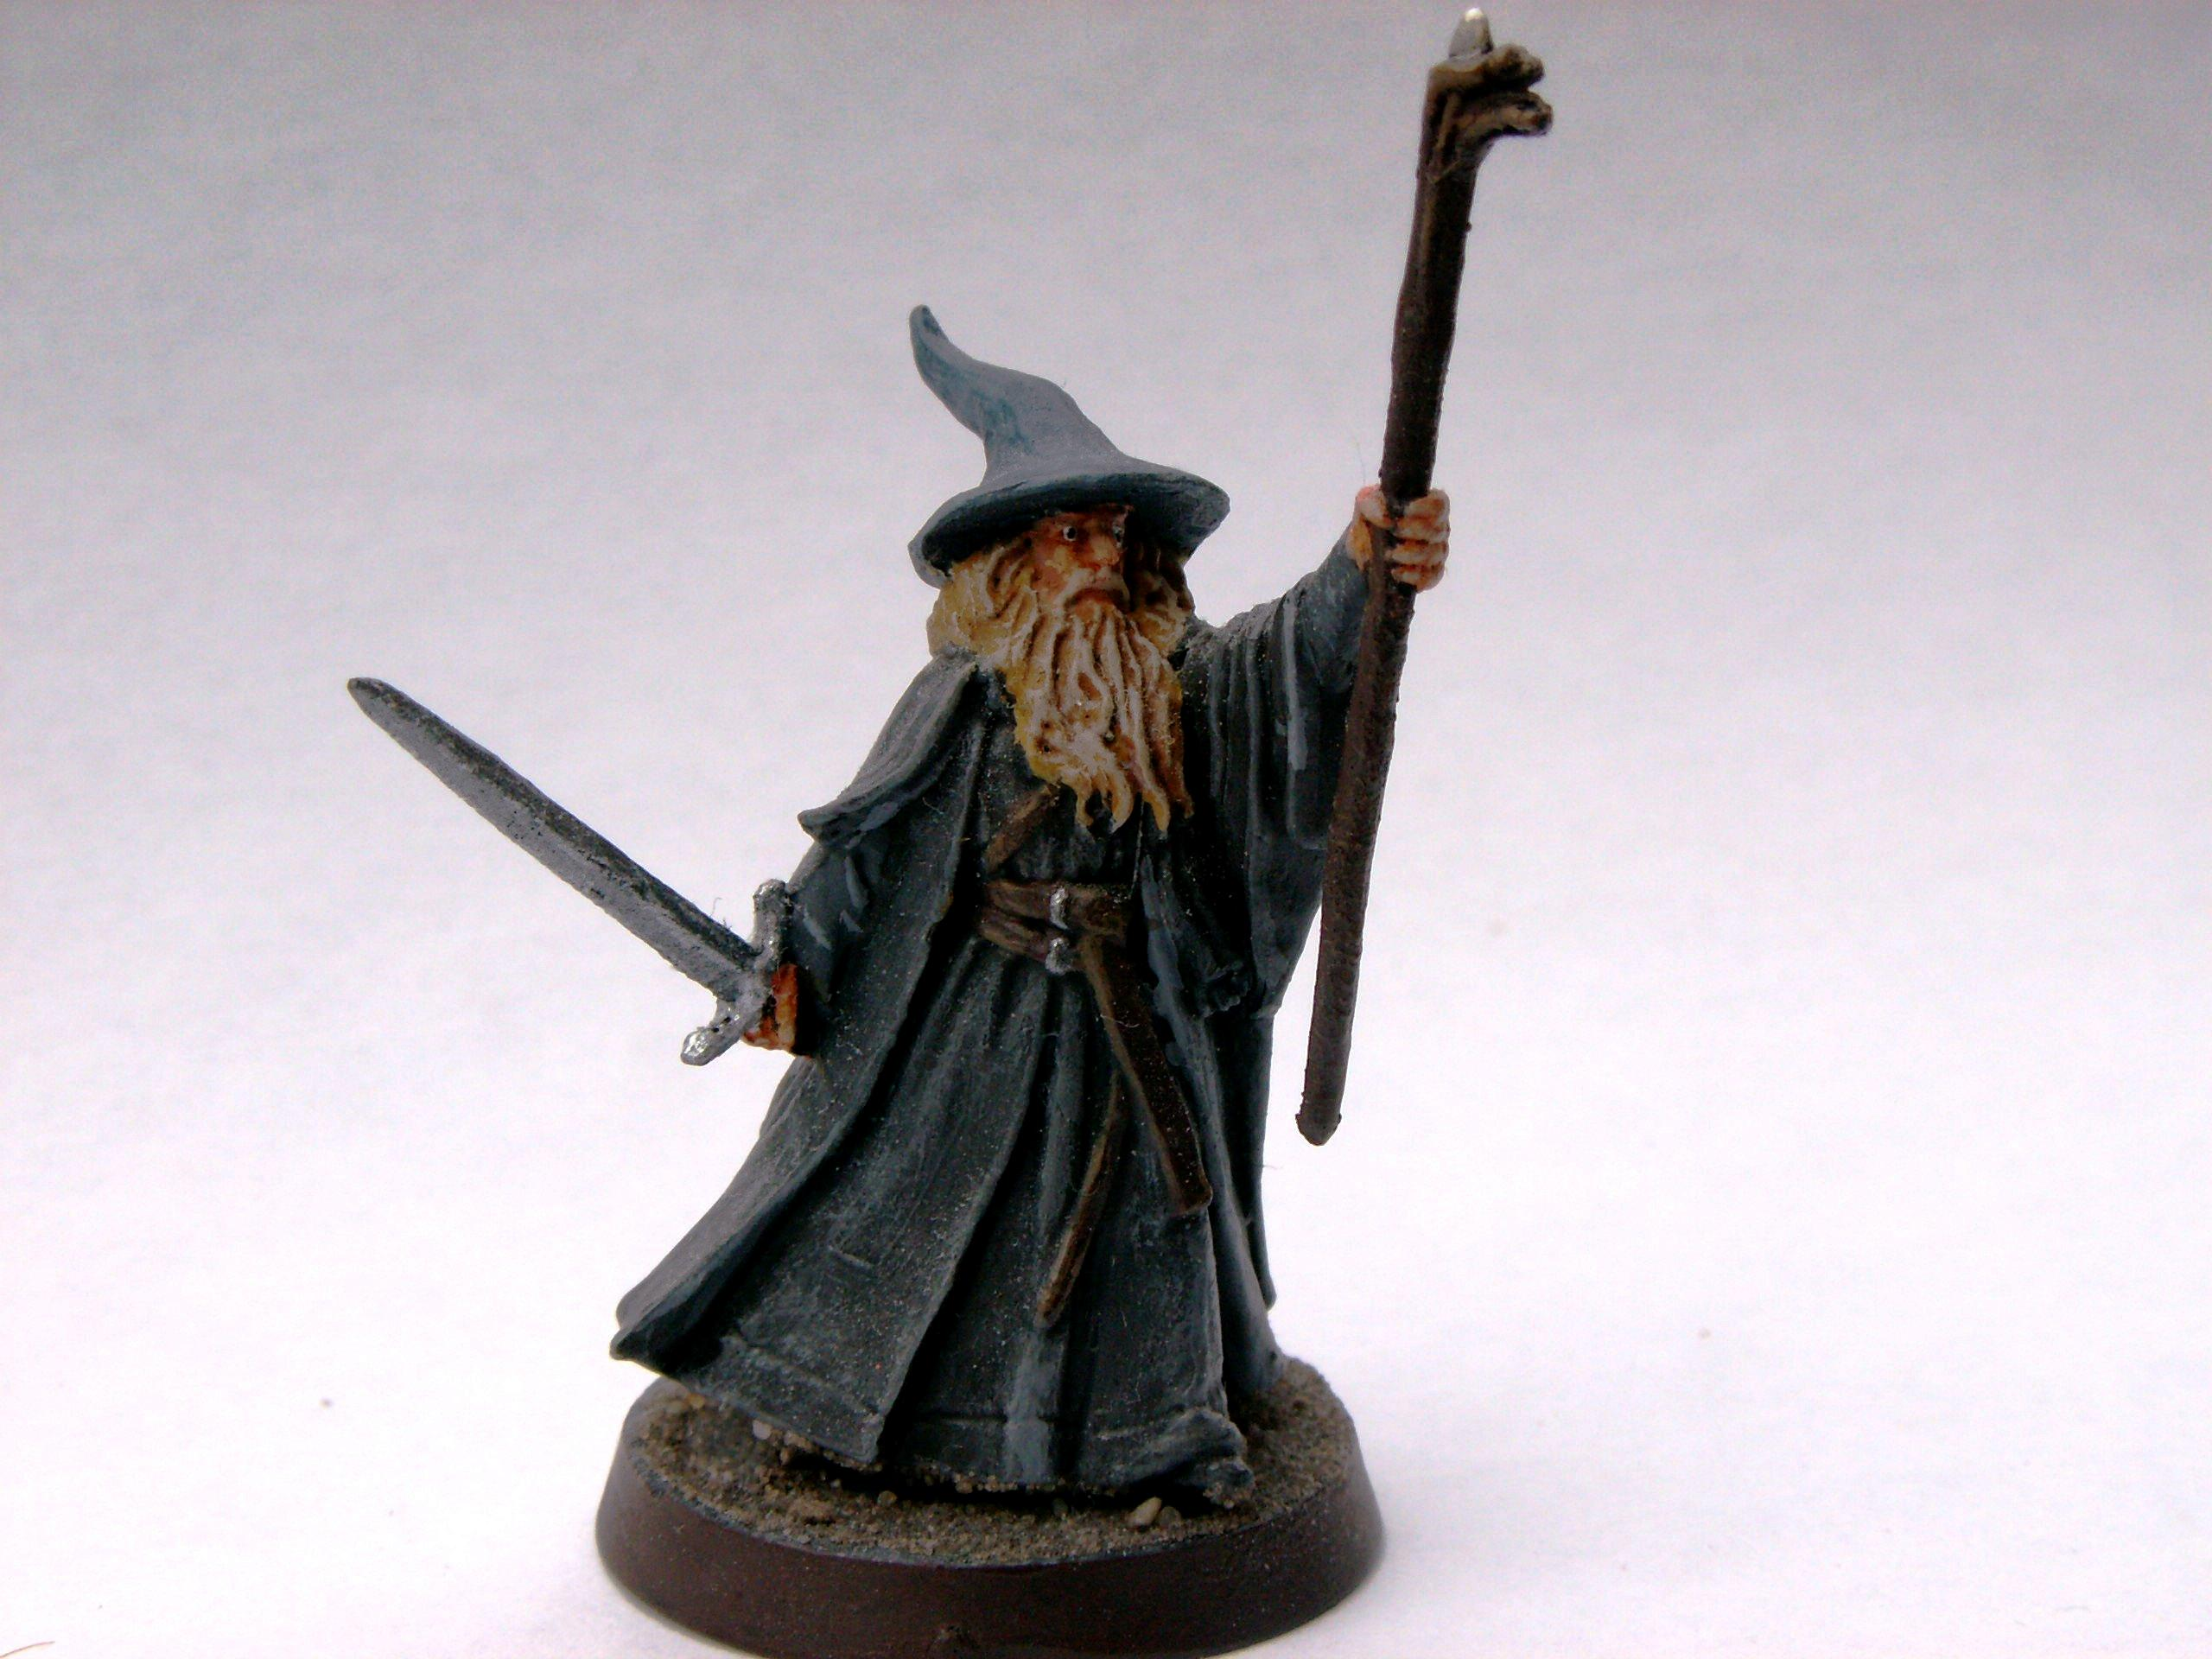 Gandalf The Grey, Lord Of The Rings, Lord Of The Rings Gandalf